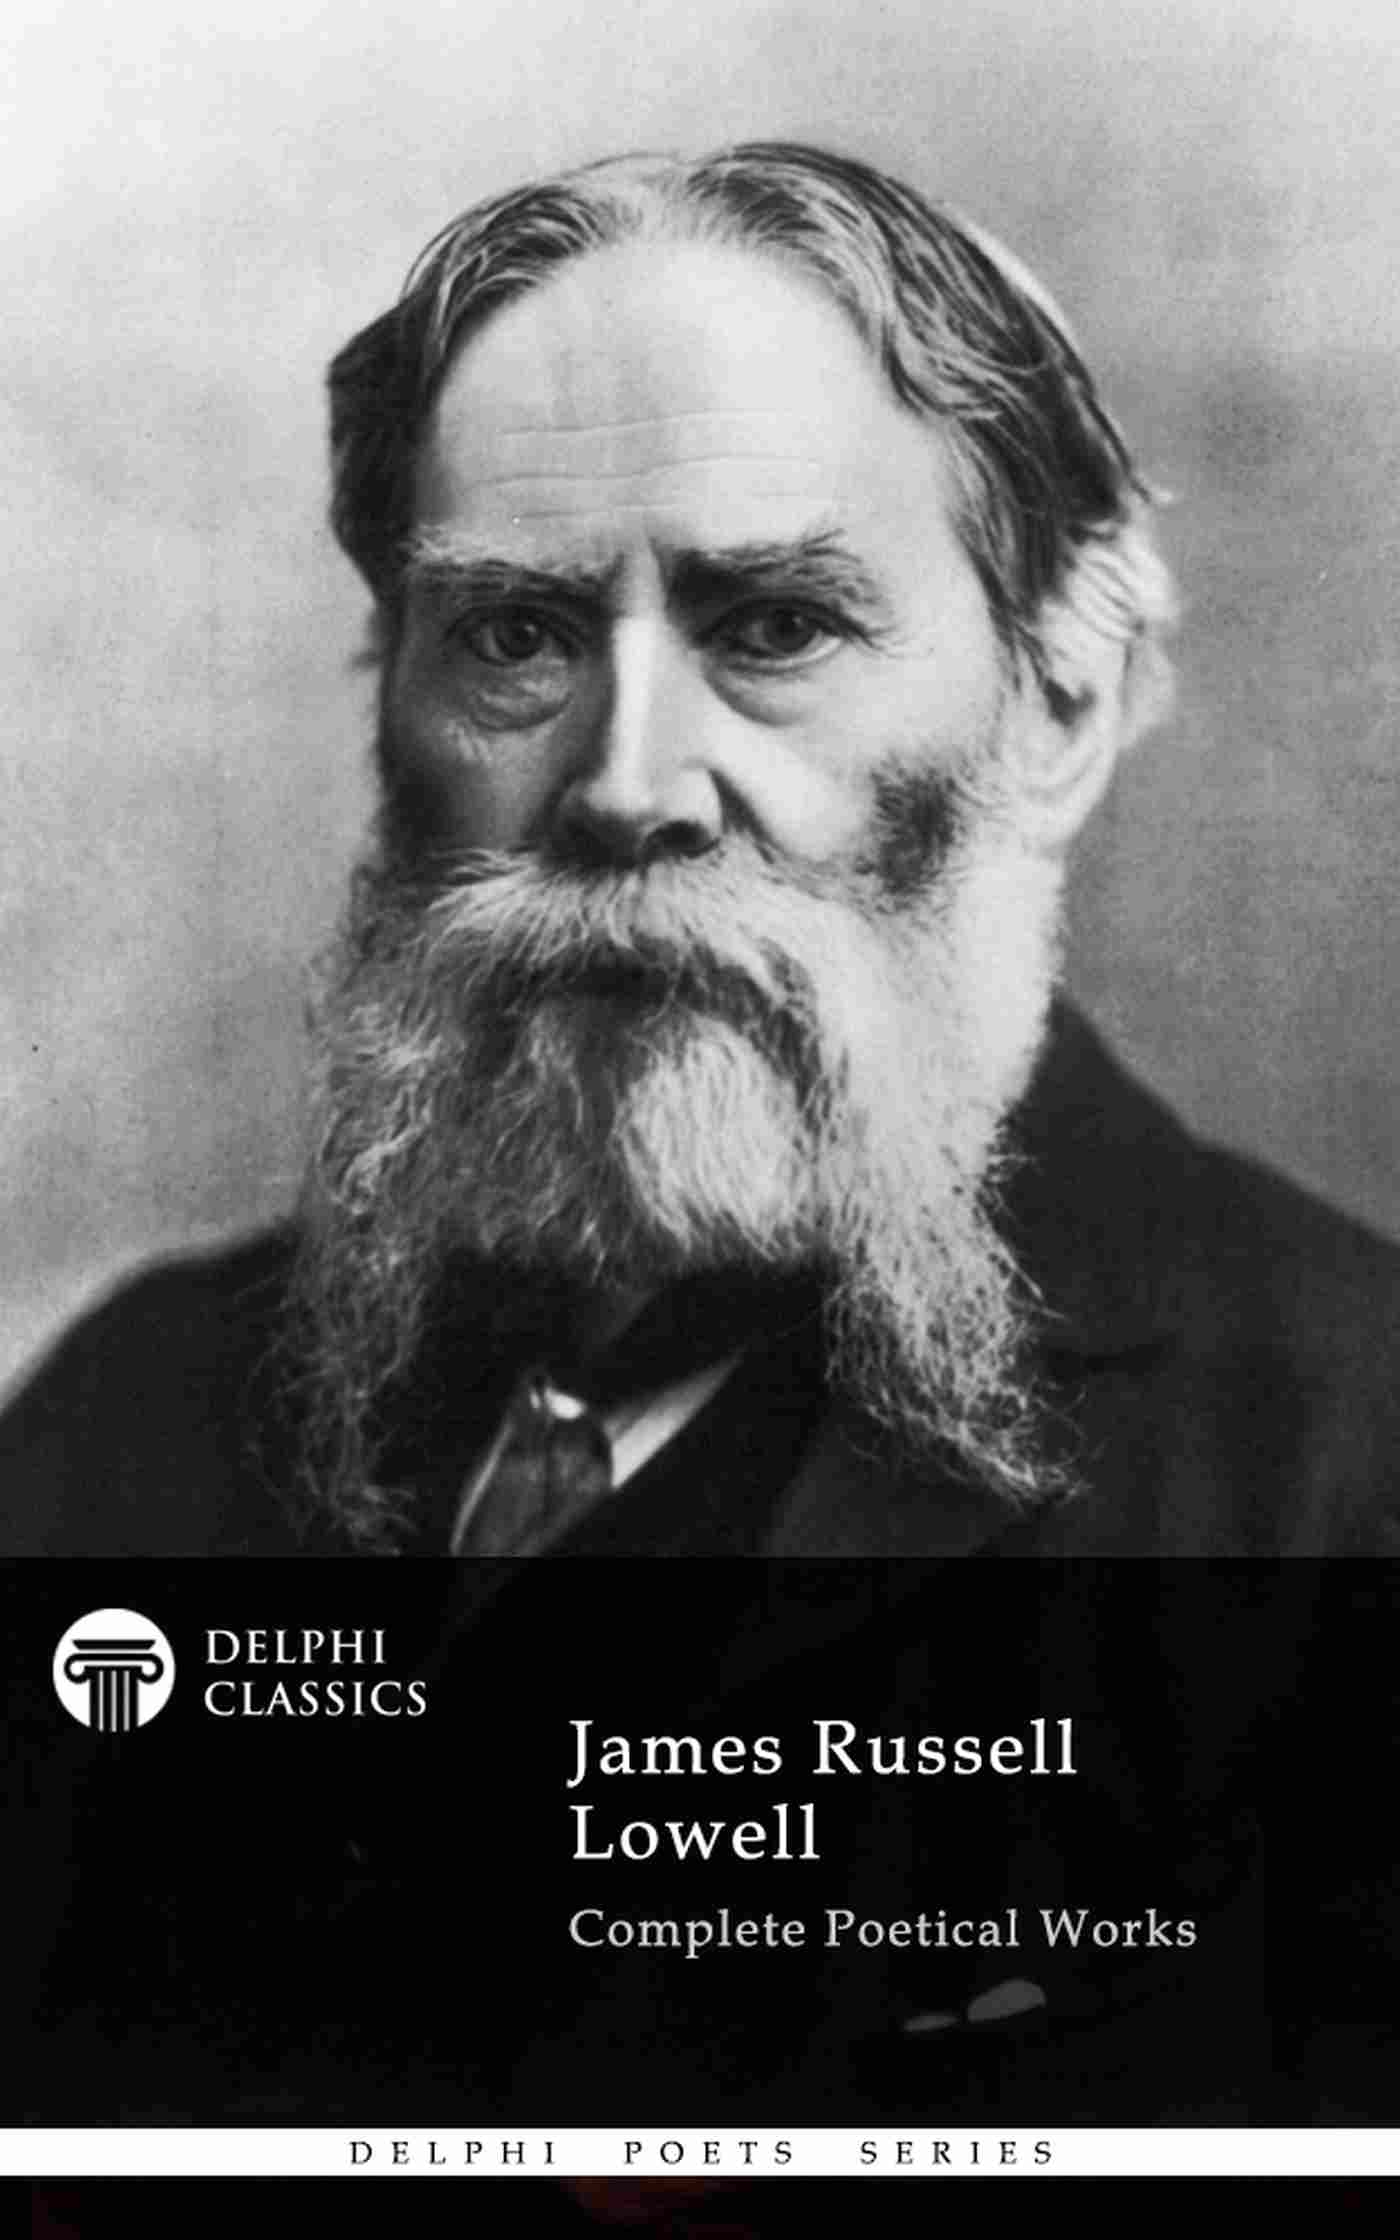 More Books by James Russell Lowell